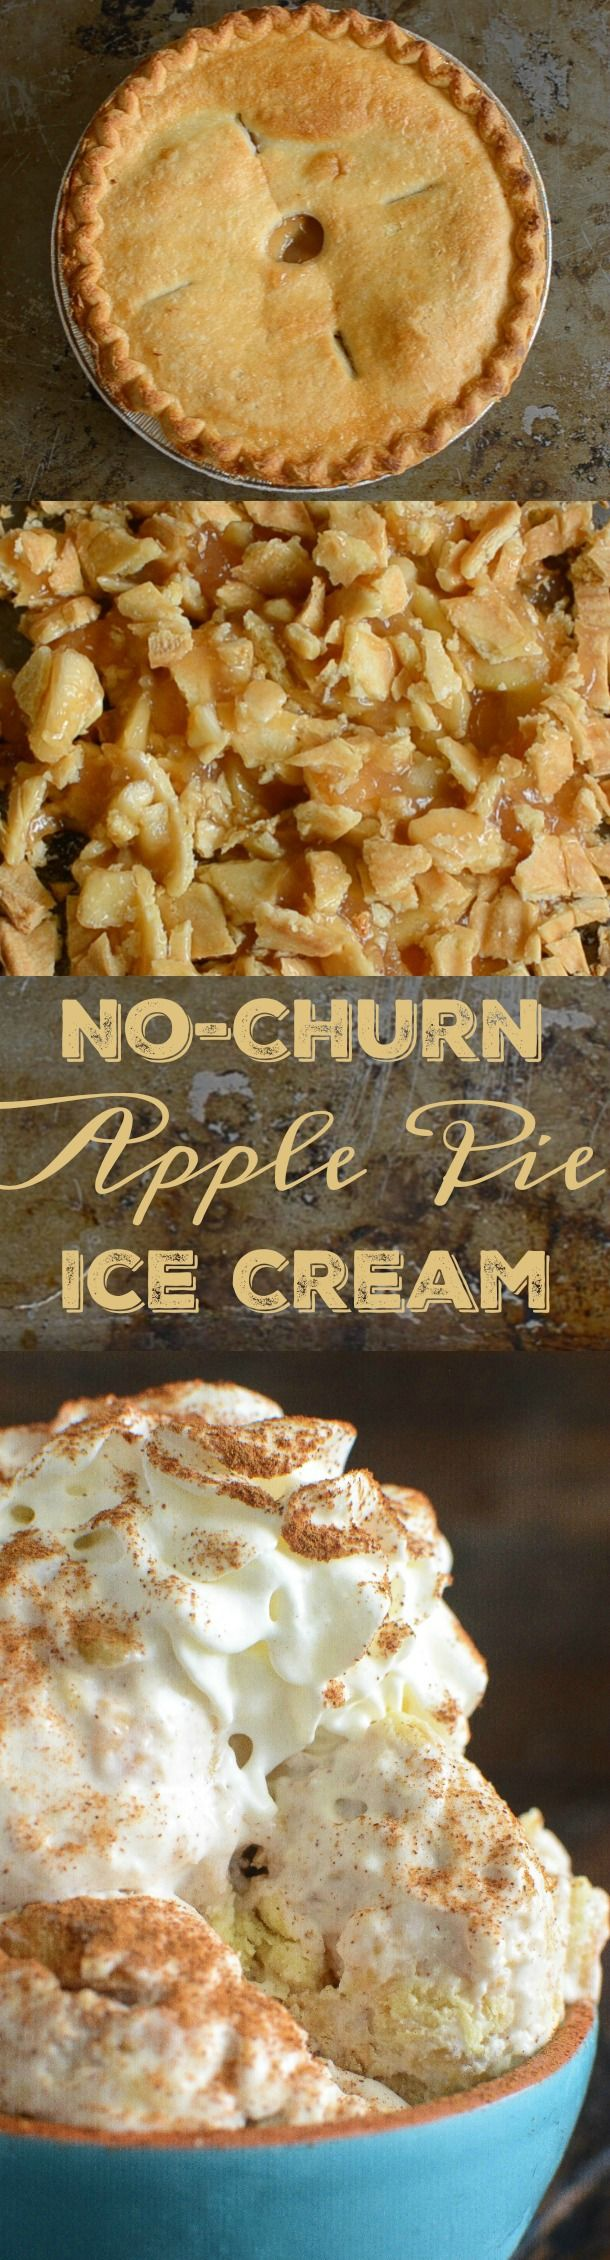 No Churn Apple Pie Ice Cream: the ultimate apple pie ice cream, with an entire pie swirled in each creamy bite, and you only need 5 ingredients to make it!